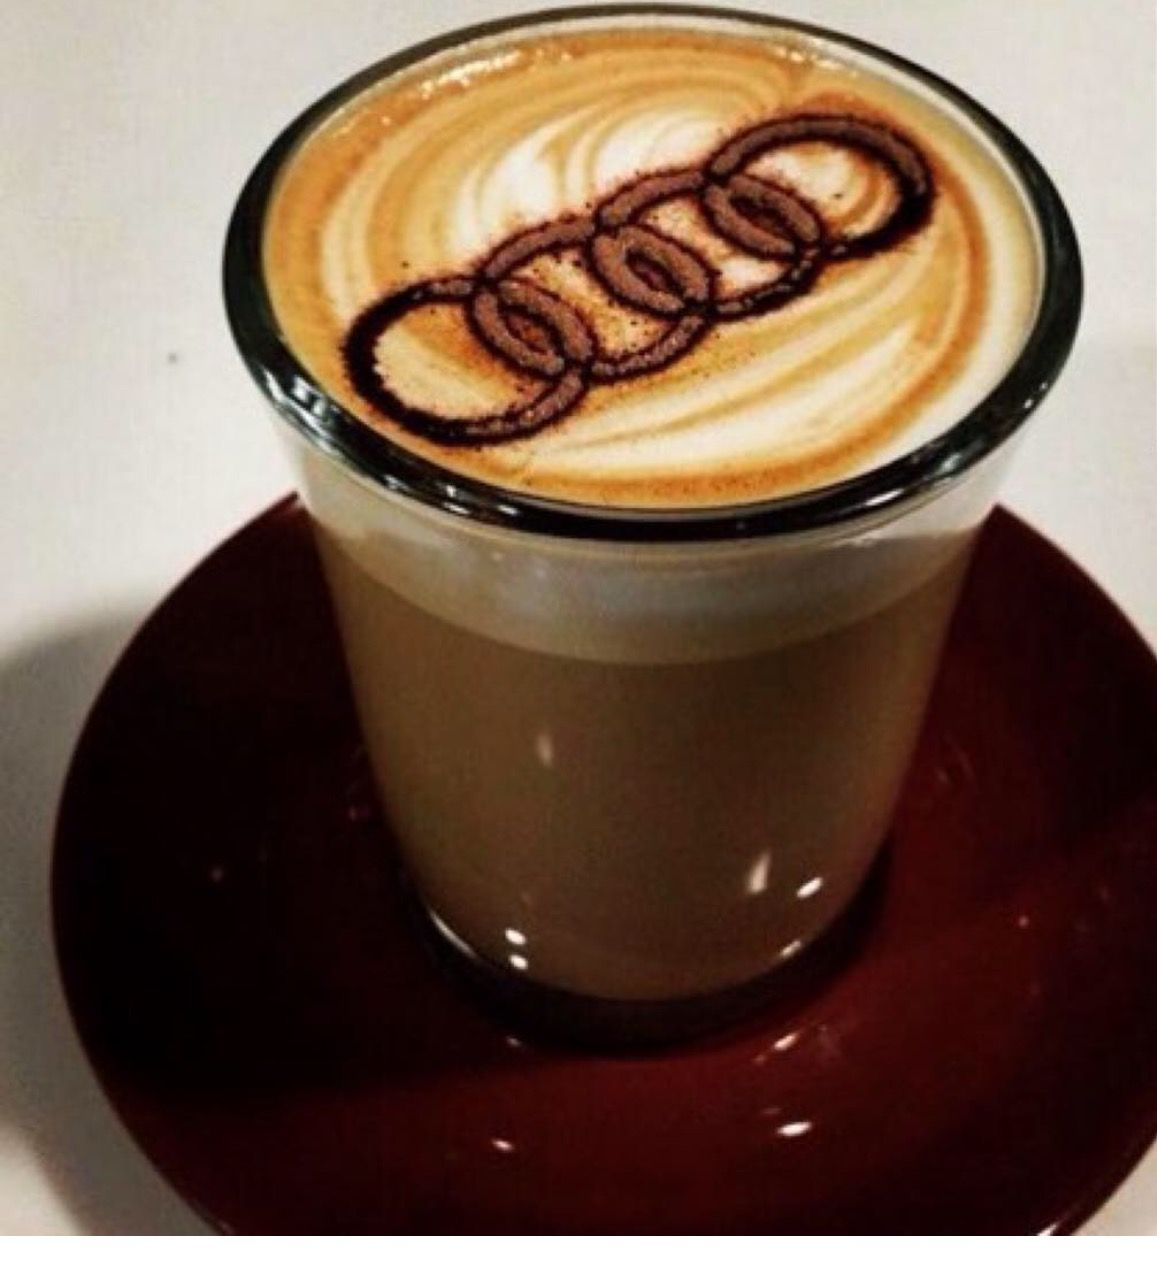 Pin By Colette Palmerio On Audi Coffee Lover Audi Motor Audi R8